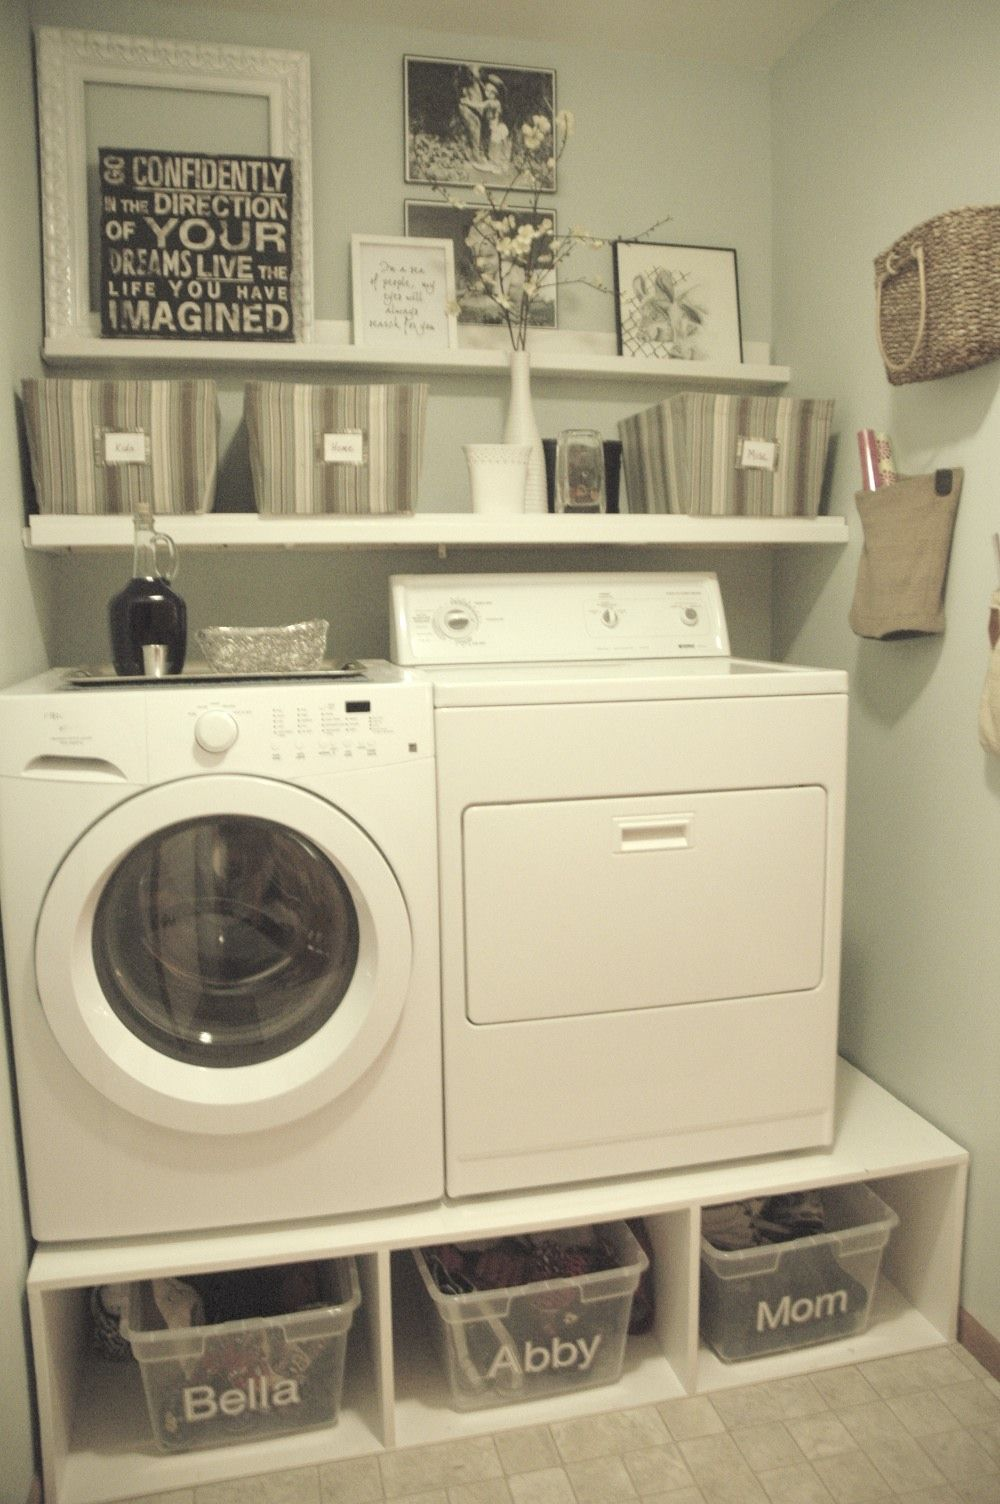 25 ideas for small laundry spaces tiny laundry rooms laundry rooms and laundry - Washer dryers for small spaces ideas ...